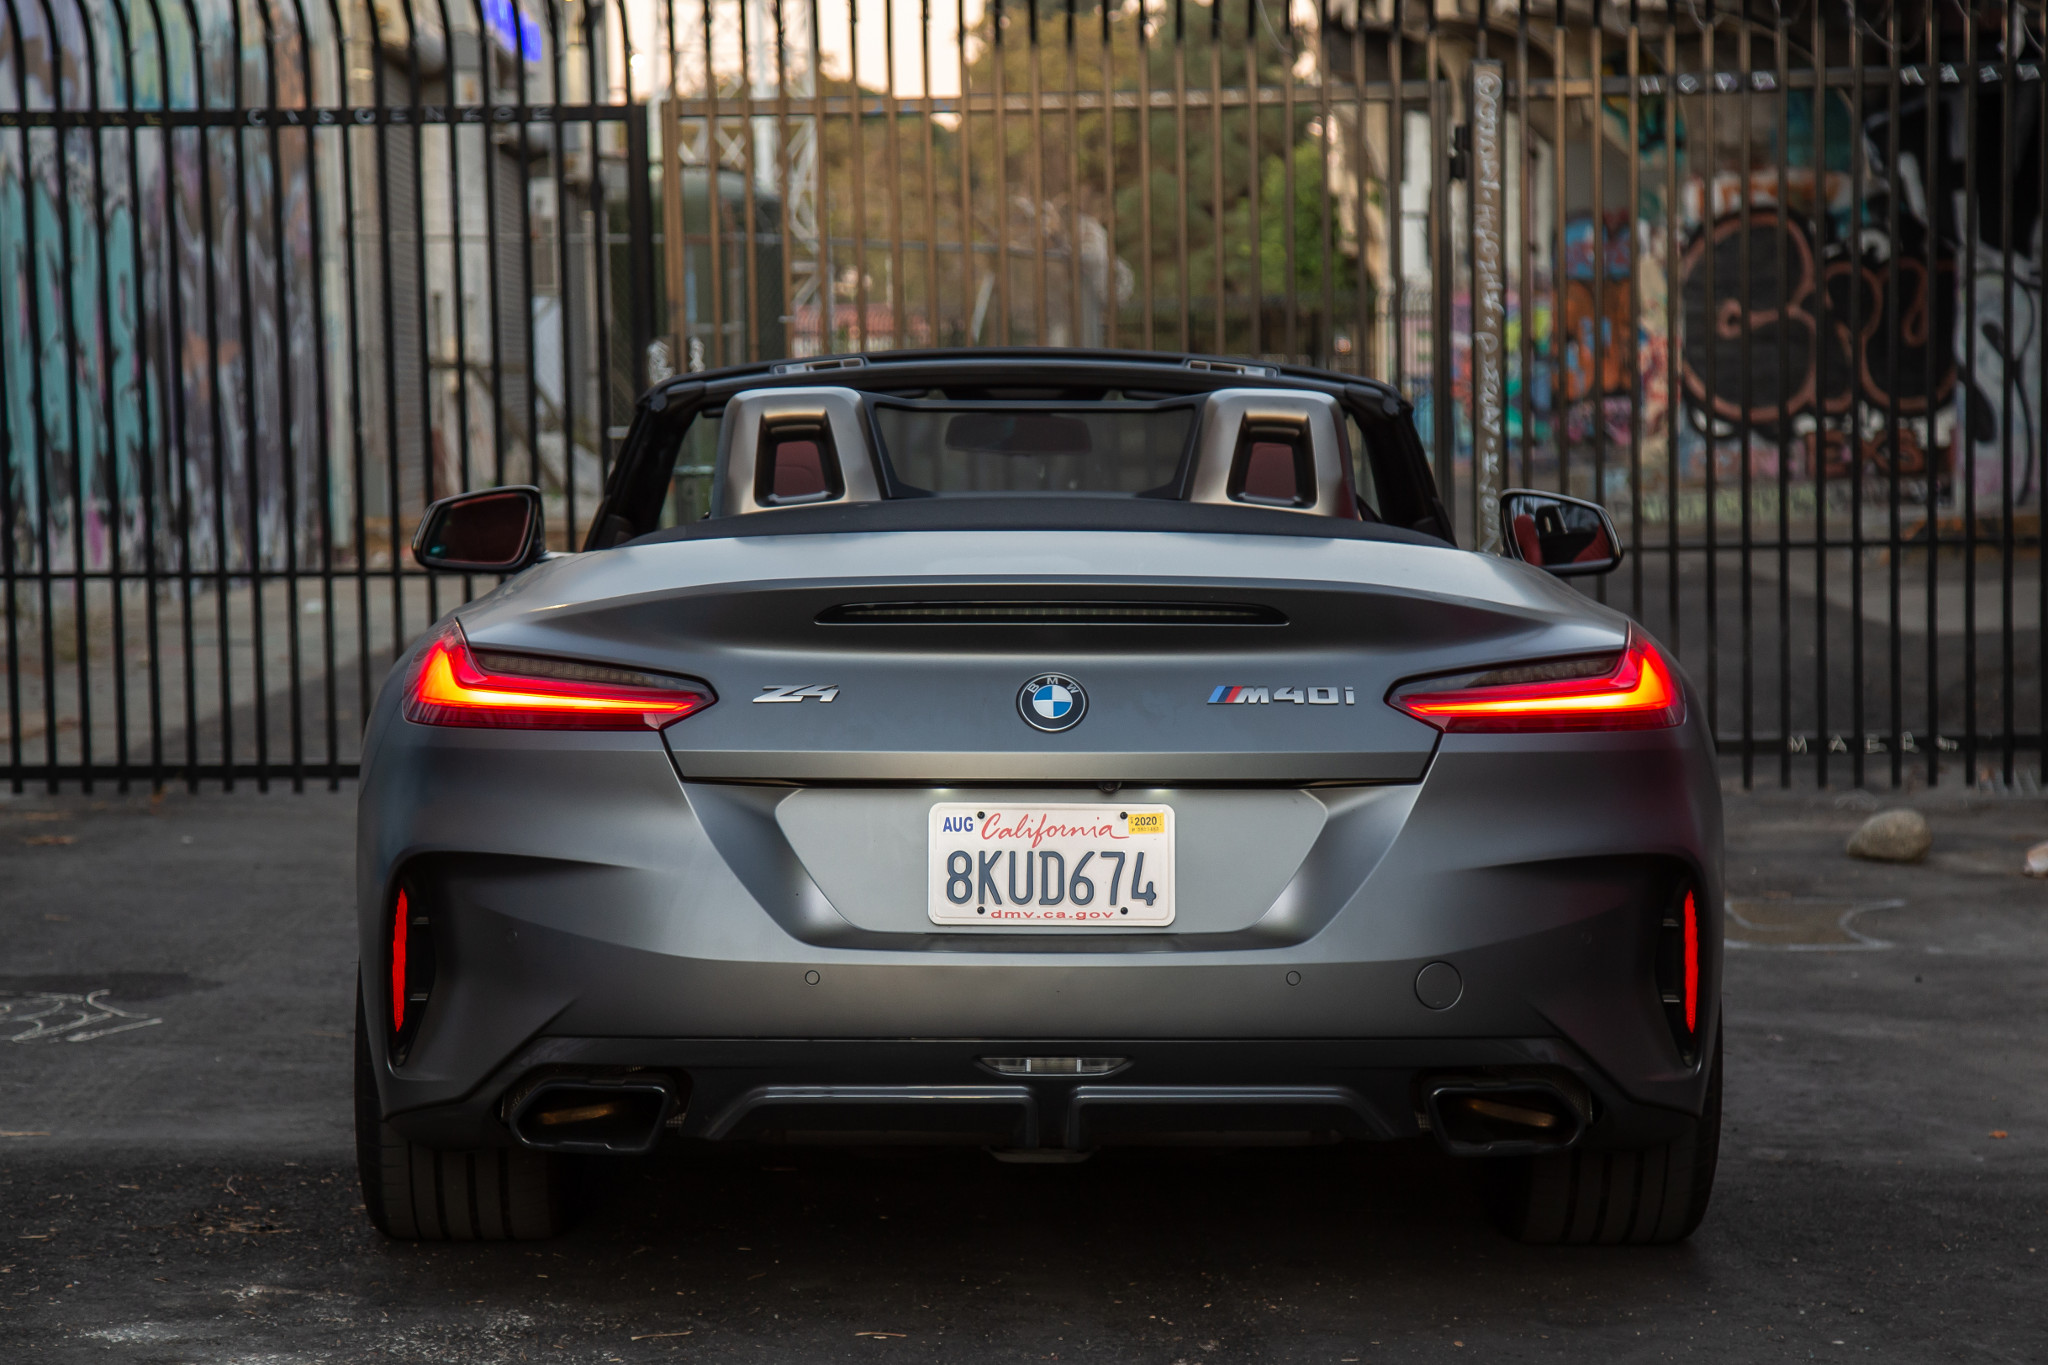 bmw z4 m40i sdrive 2020 14 exterior rear silver textures and patterns urban